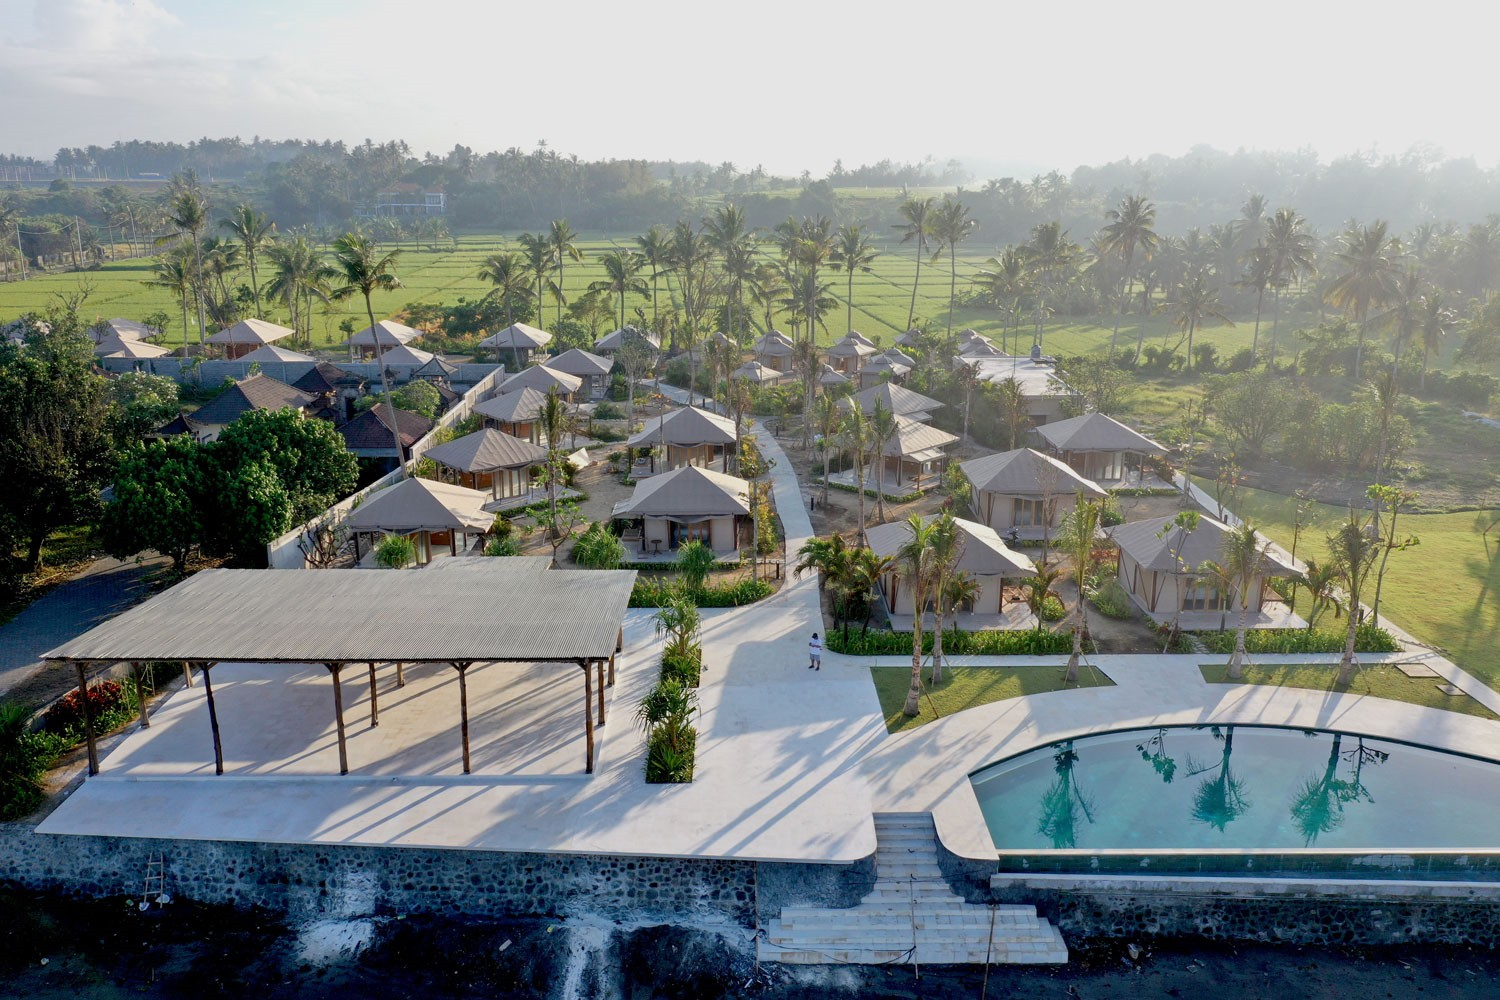 bali beach glamping helicopter view